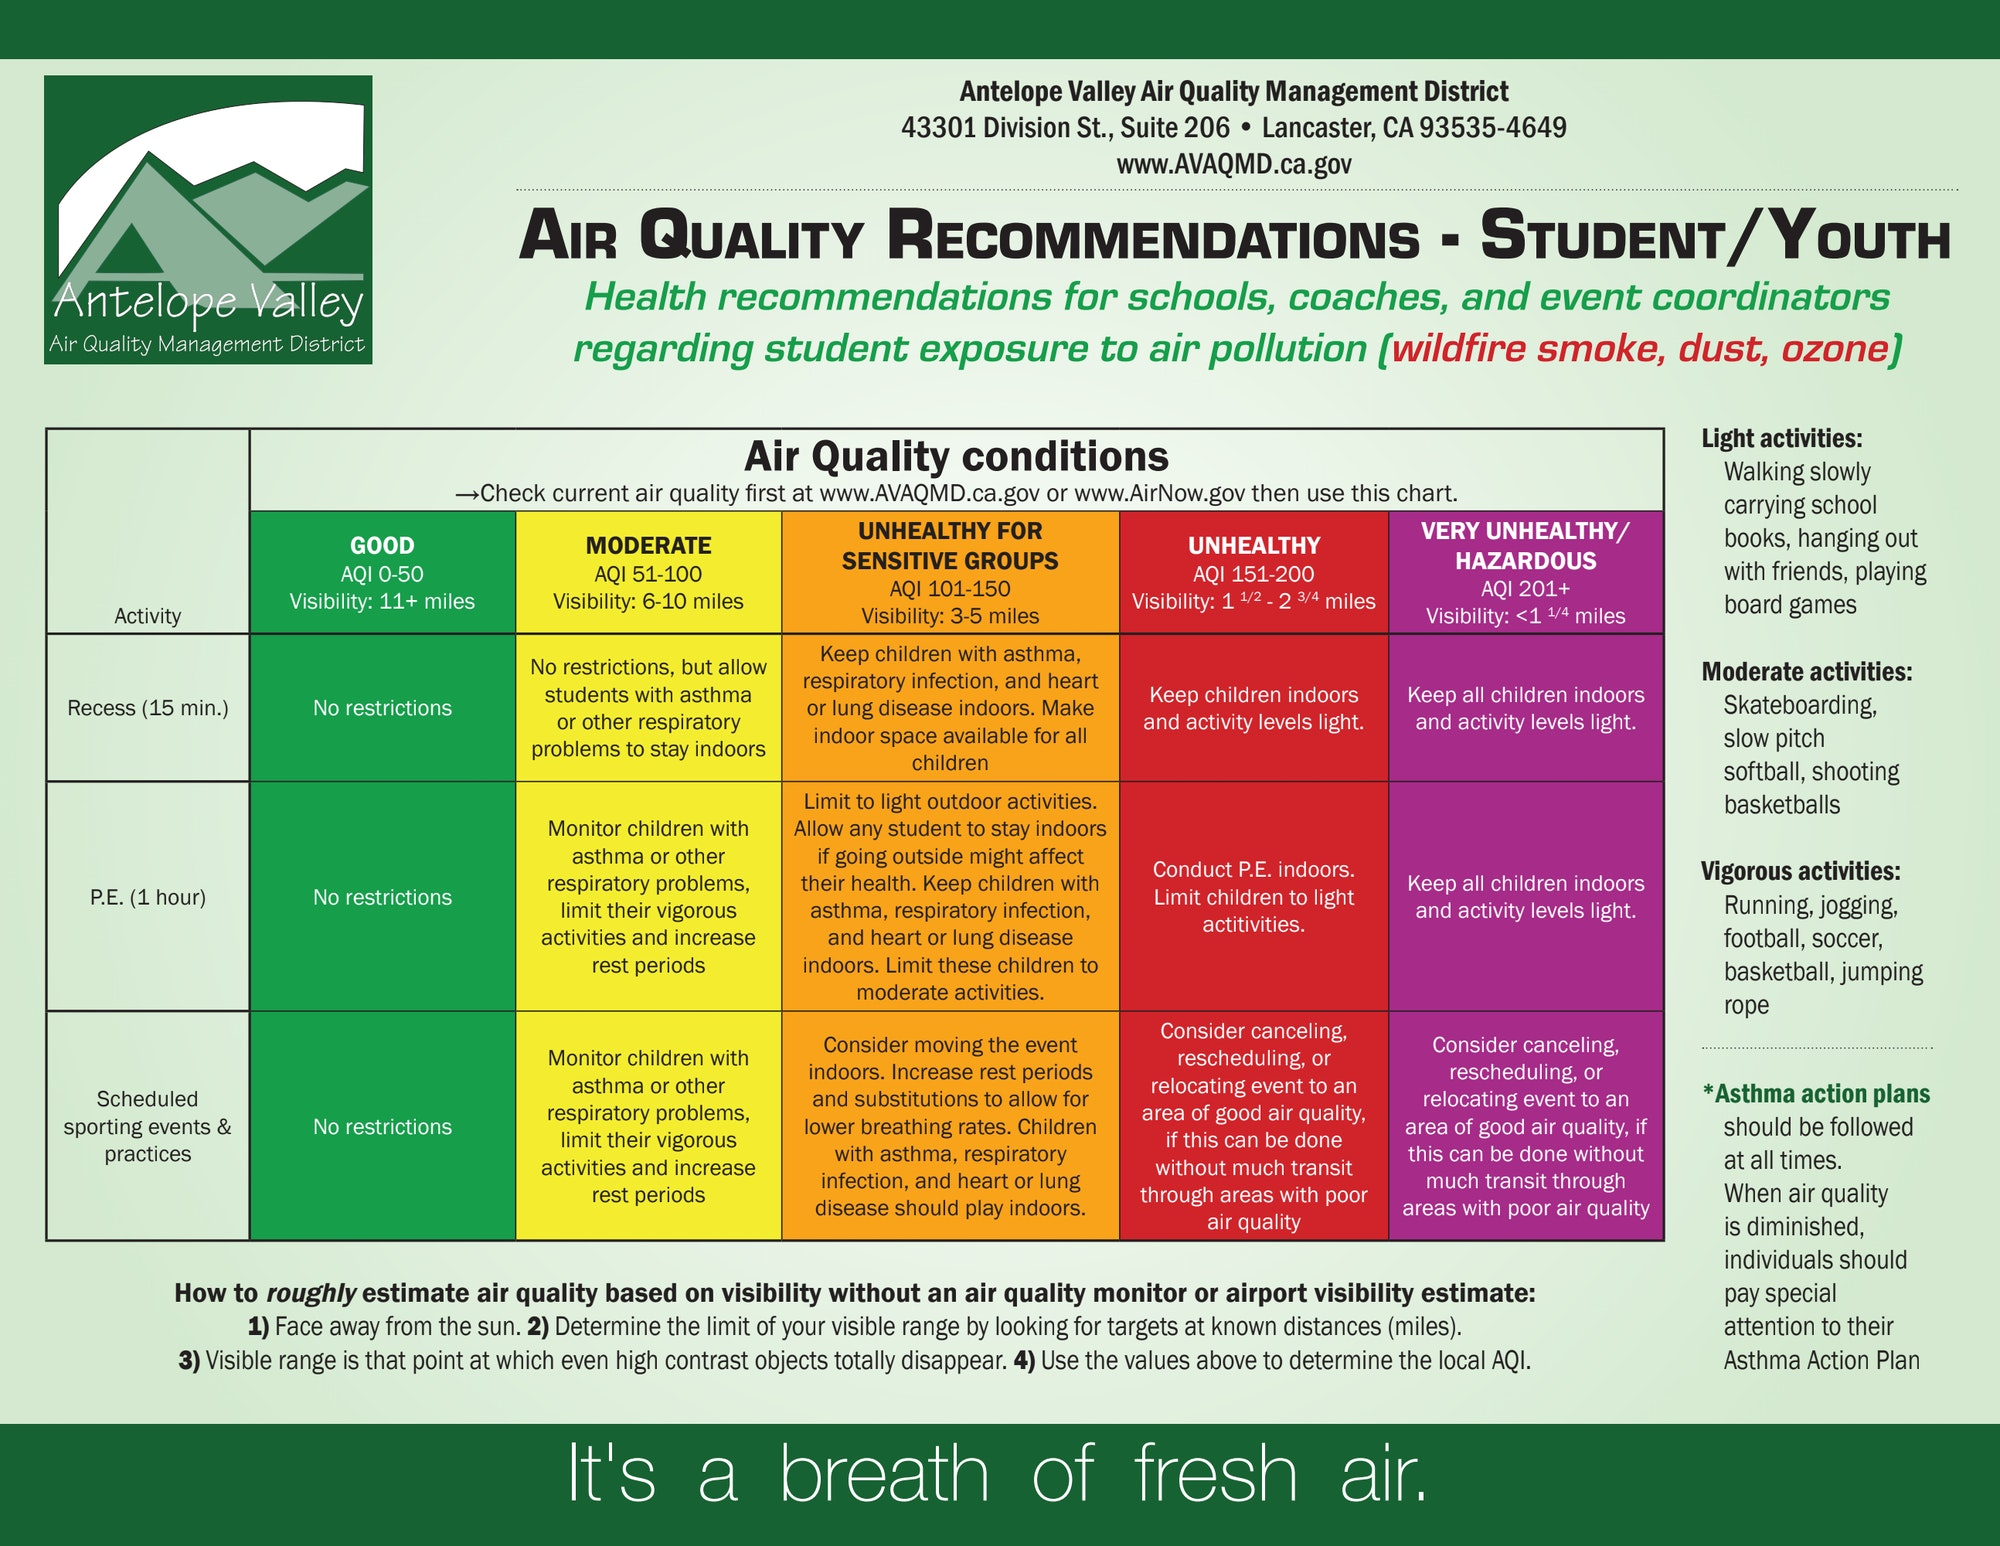 Air Quality Recommendations - Student/Youth